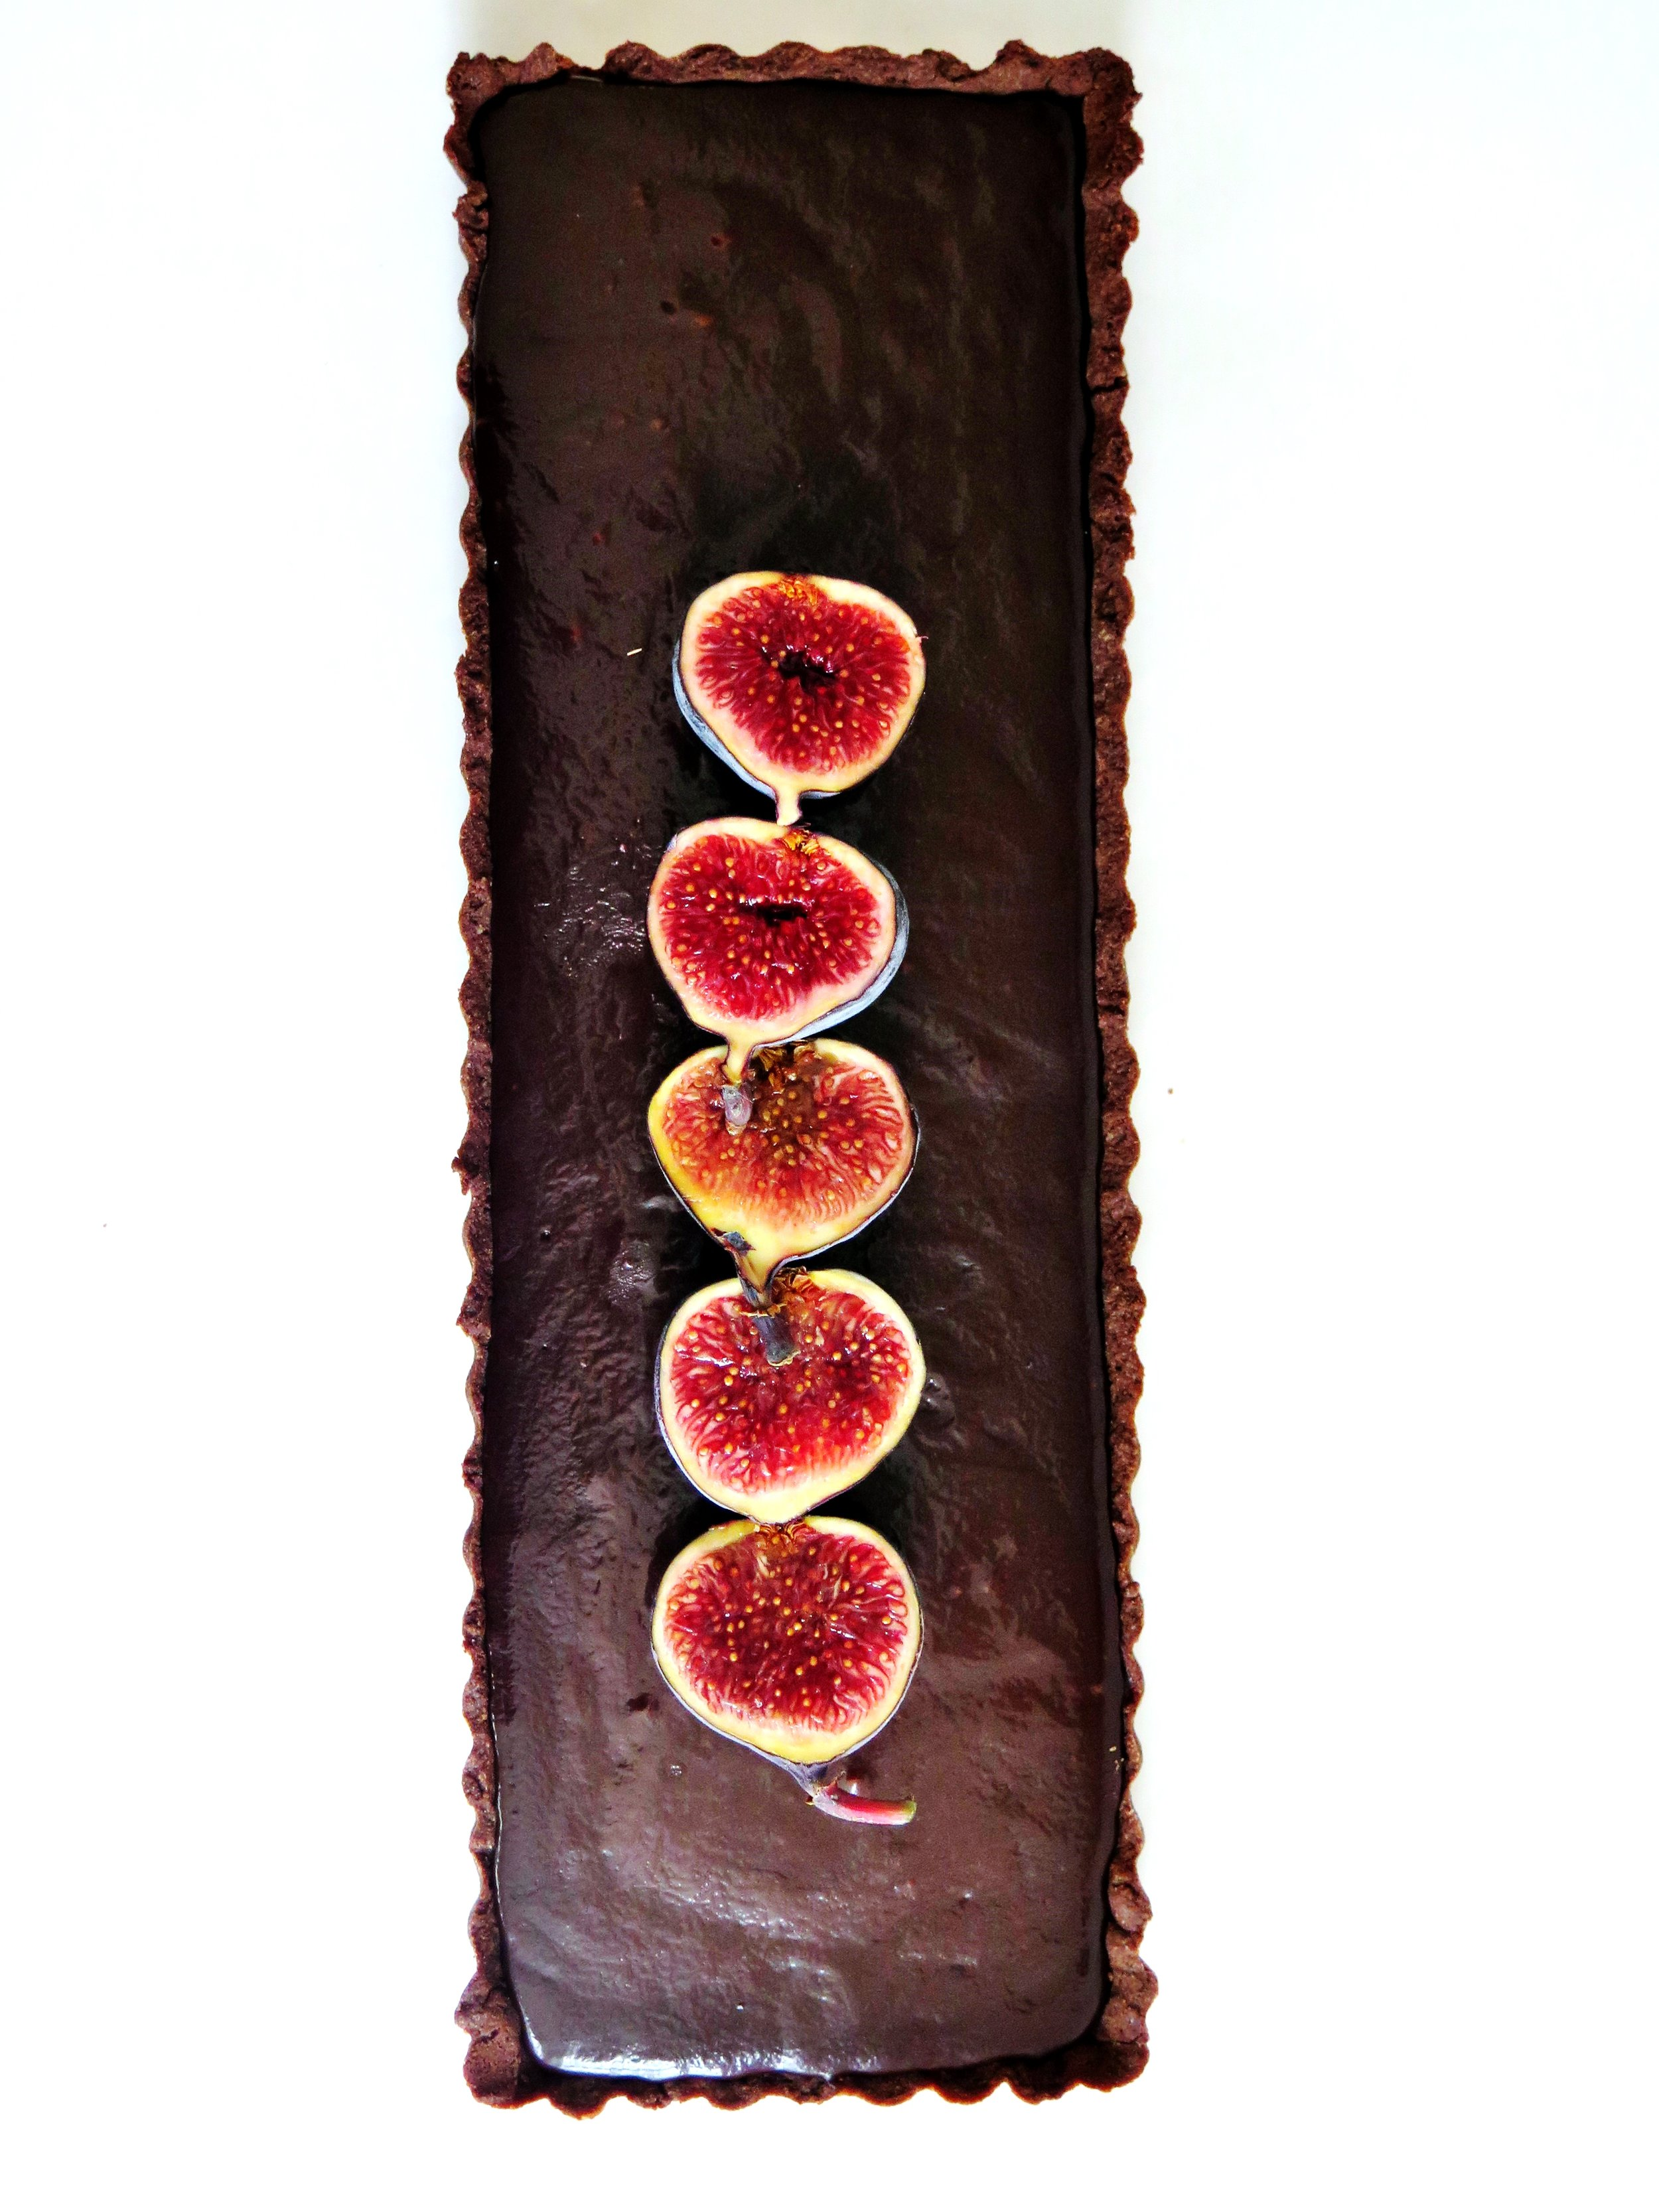 Double Chocolate Salted Caramel Tart